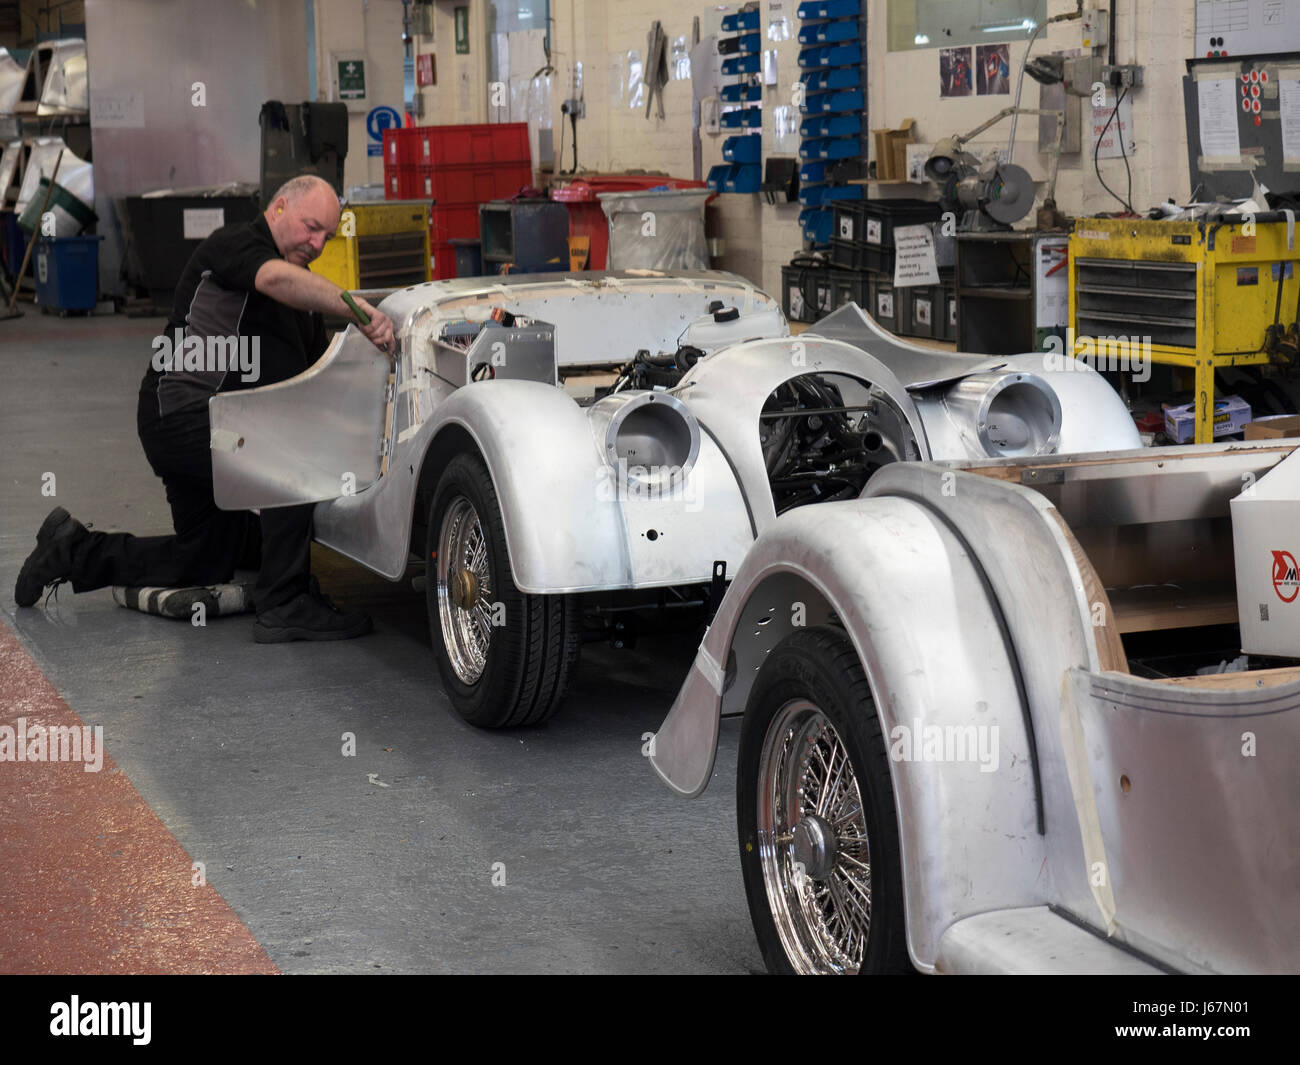 Car Buyers Stock Photos & Car Buyers Stock Images - Alamy